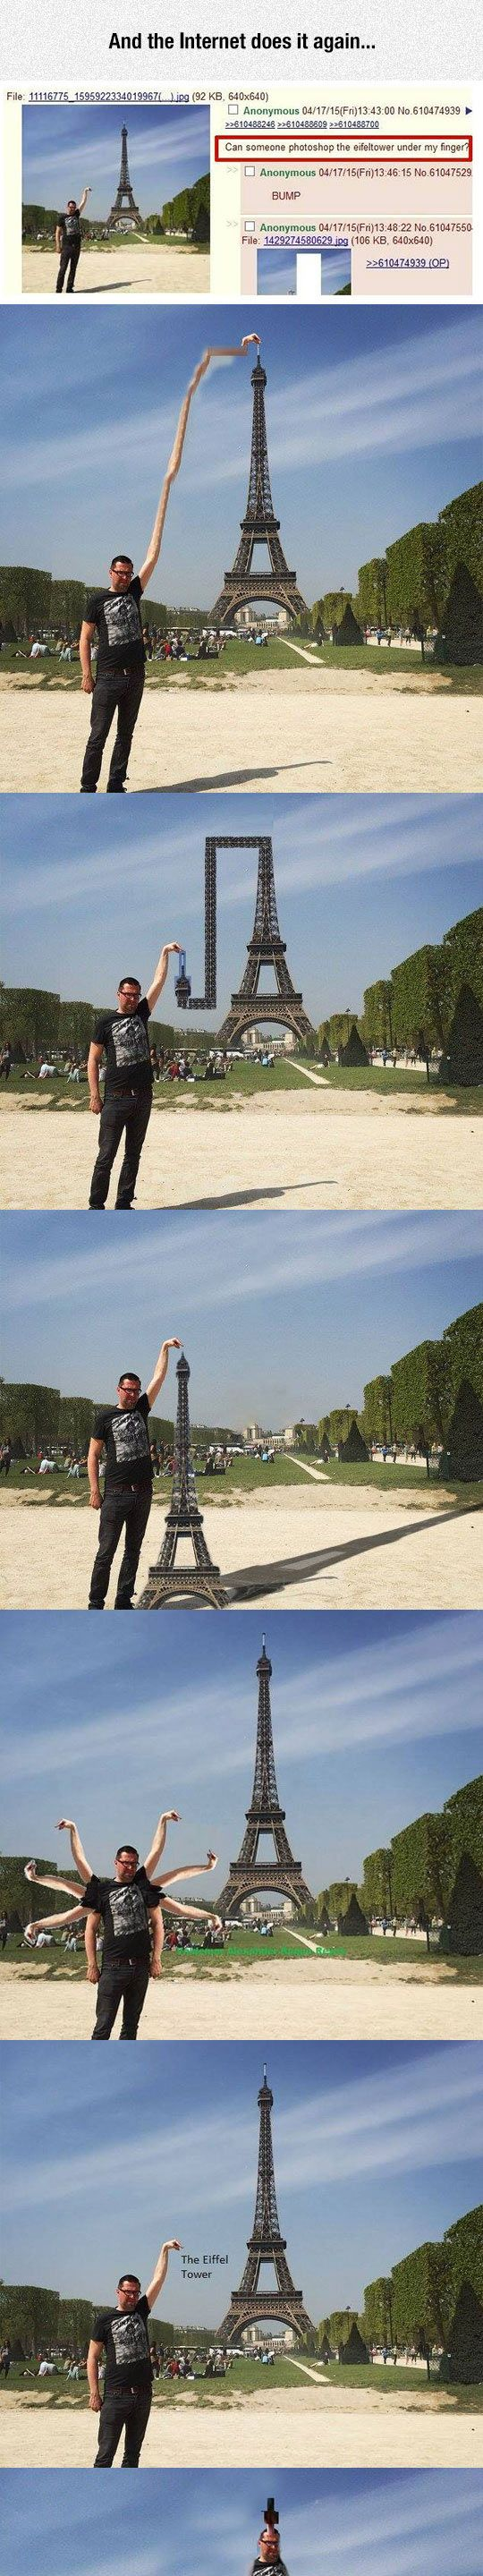 funny eiffel tower pics | funny-Eiffel-Tower-tourist-Photoshop